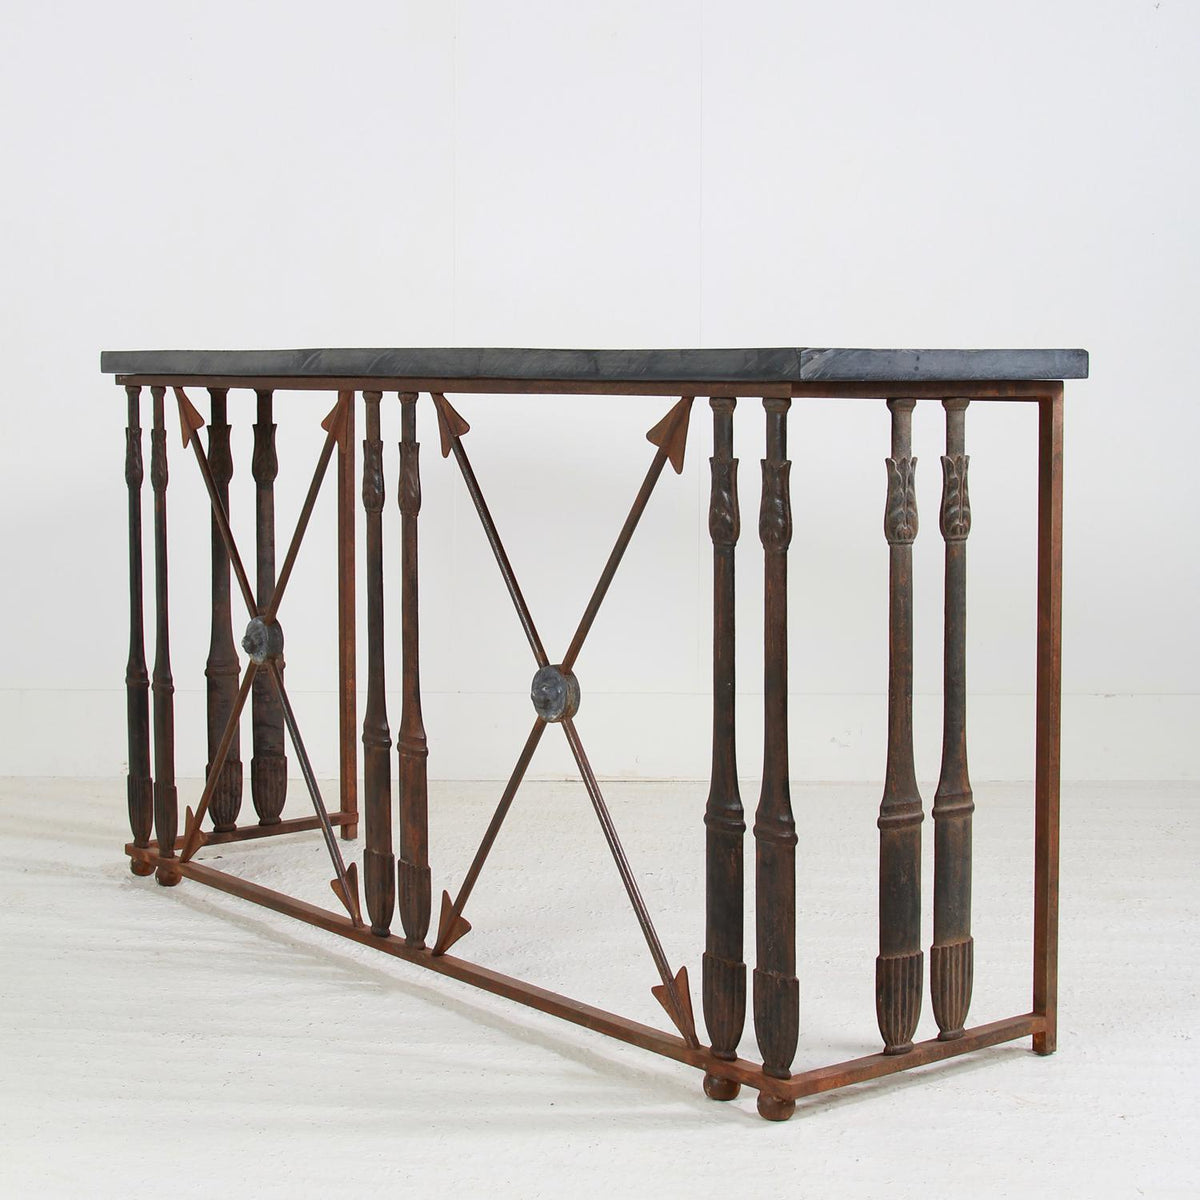 HUGE FRENCH 19TH CENTURY IRON & STONE CONSOLE TABLE